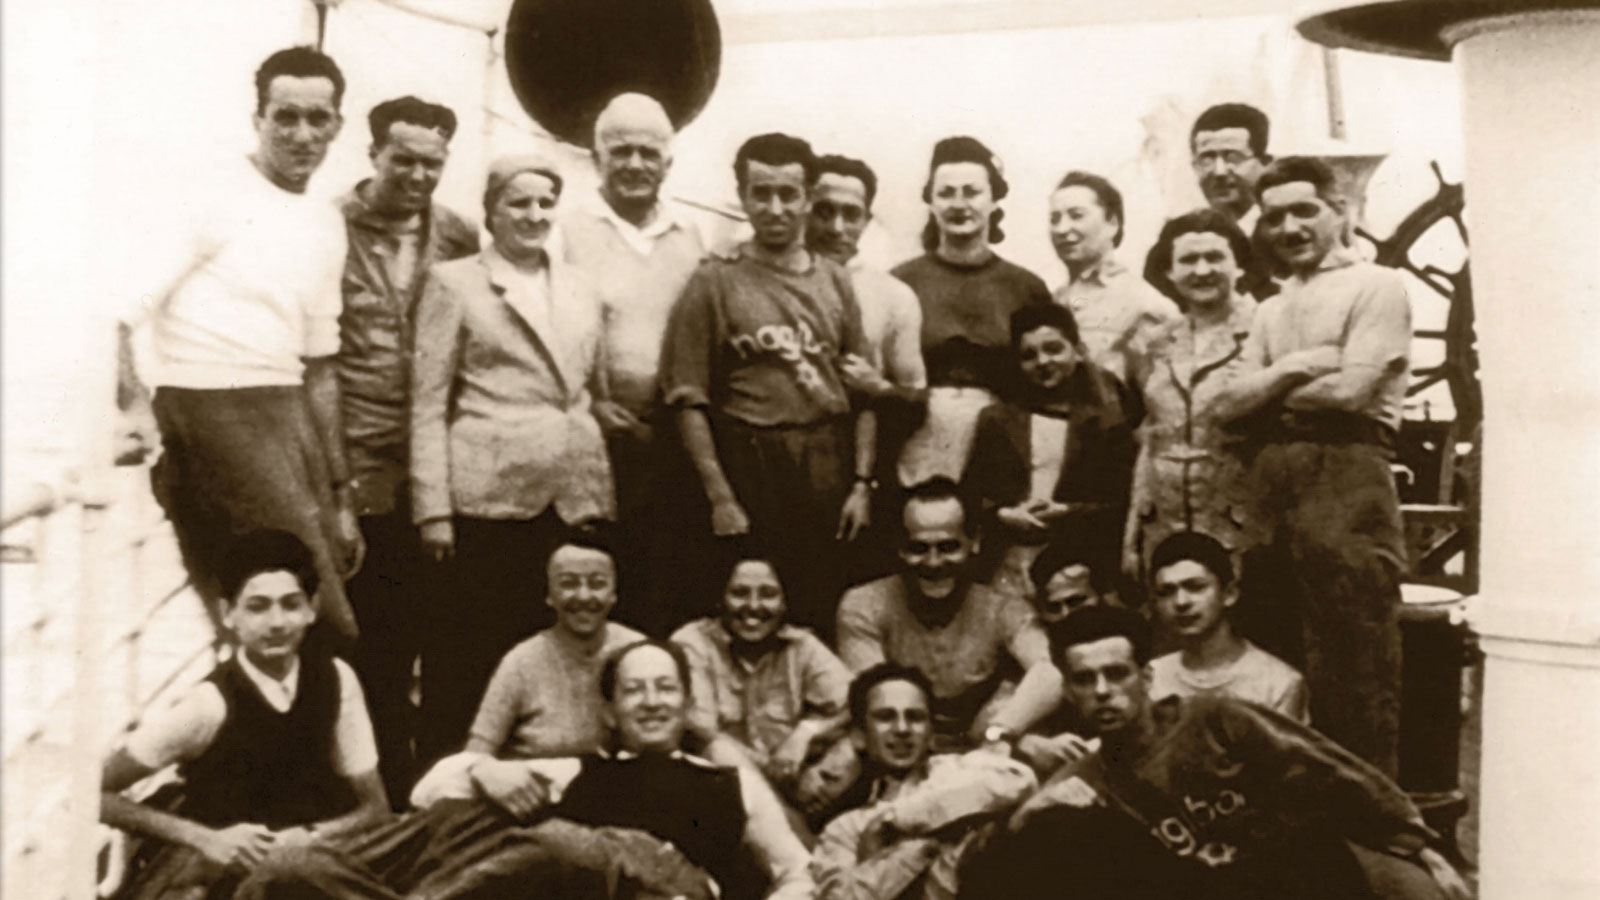 European Jewish refugees aboard the ship that took them to Ecuador.